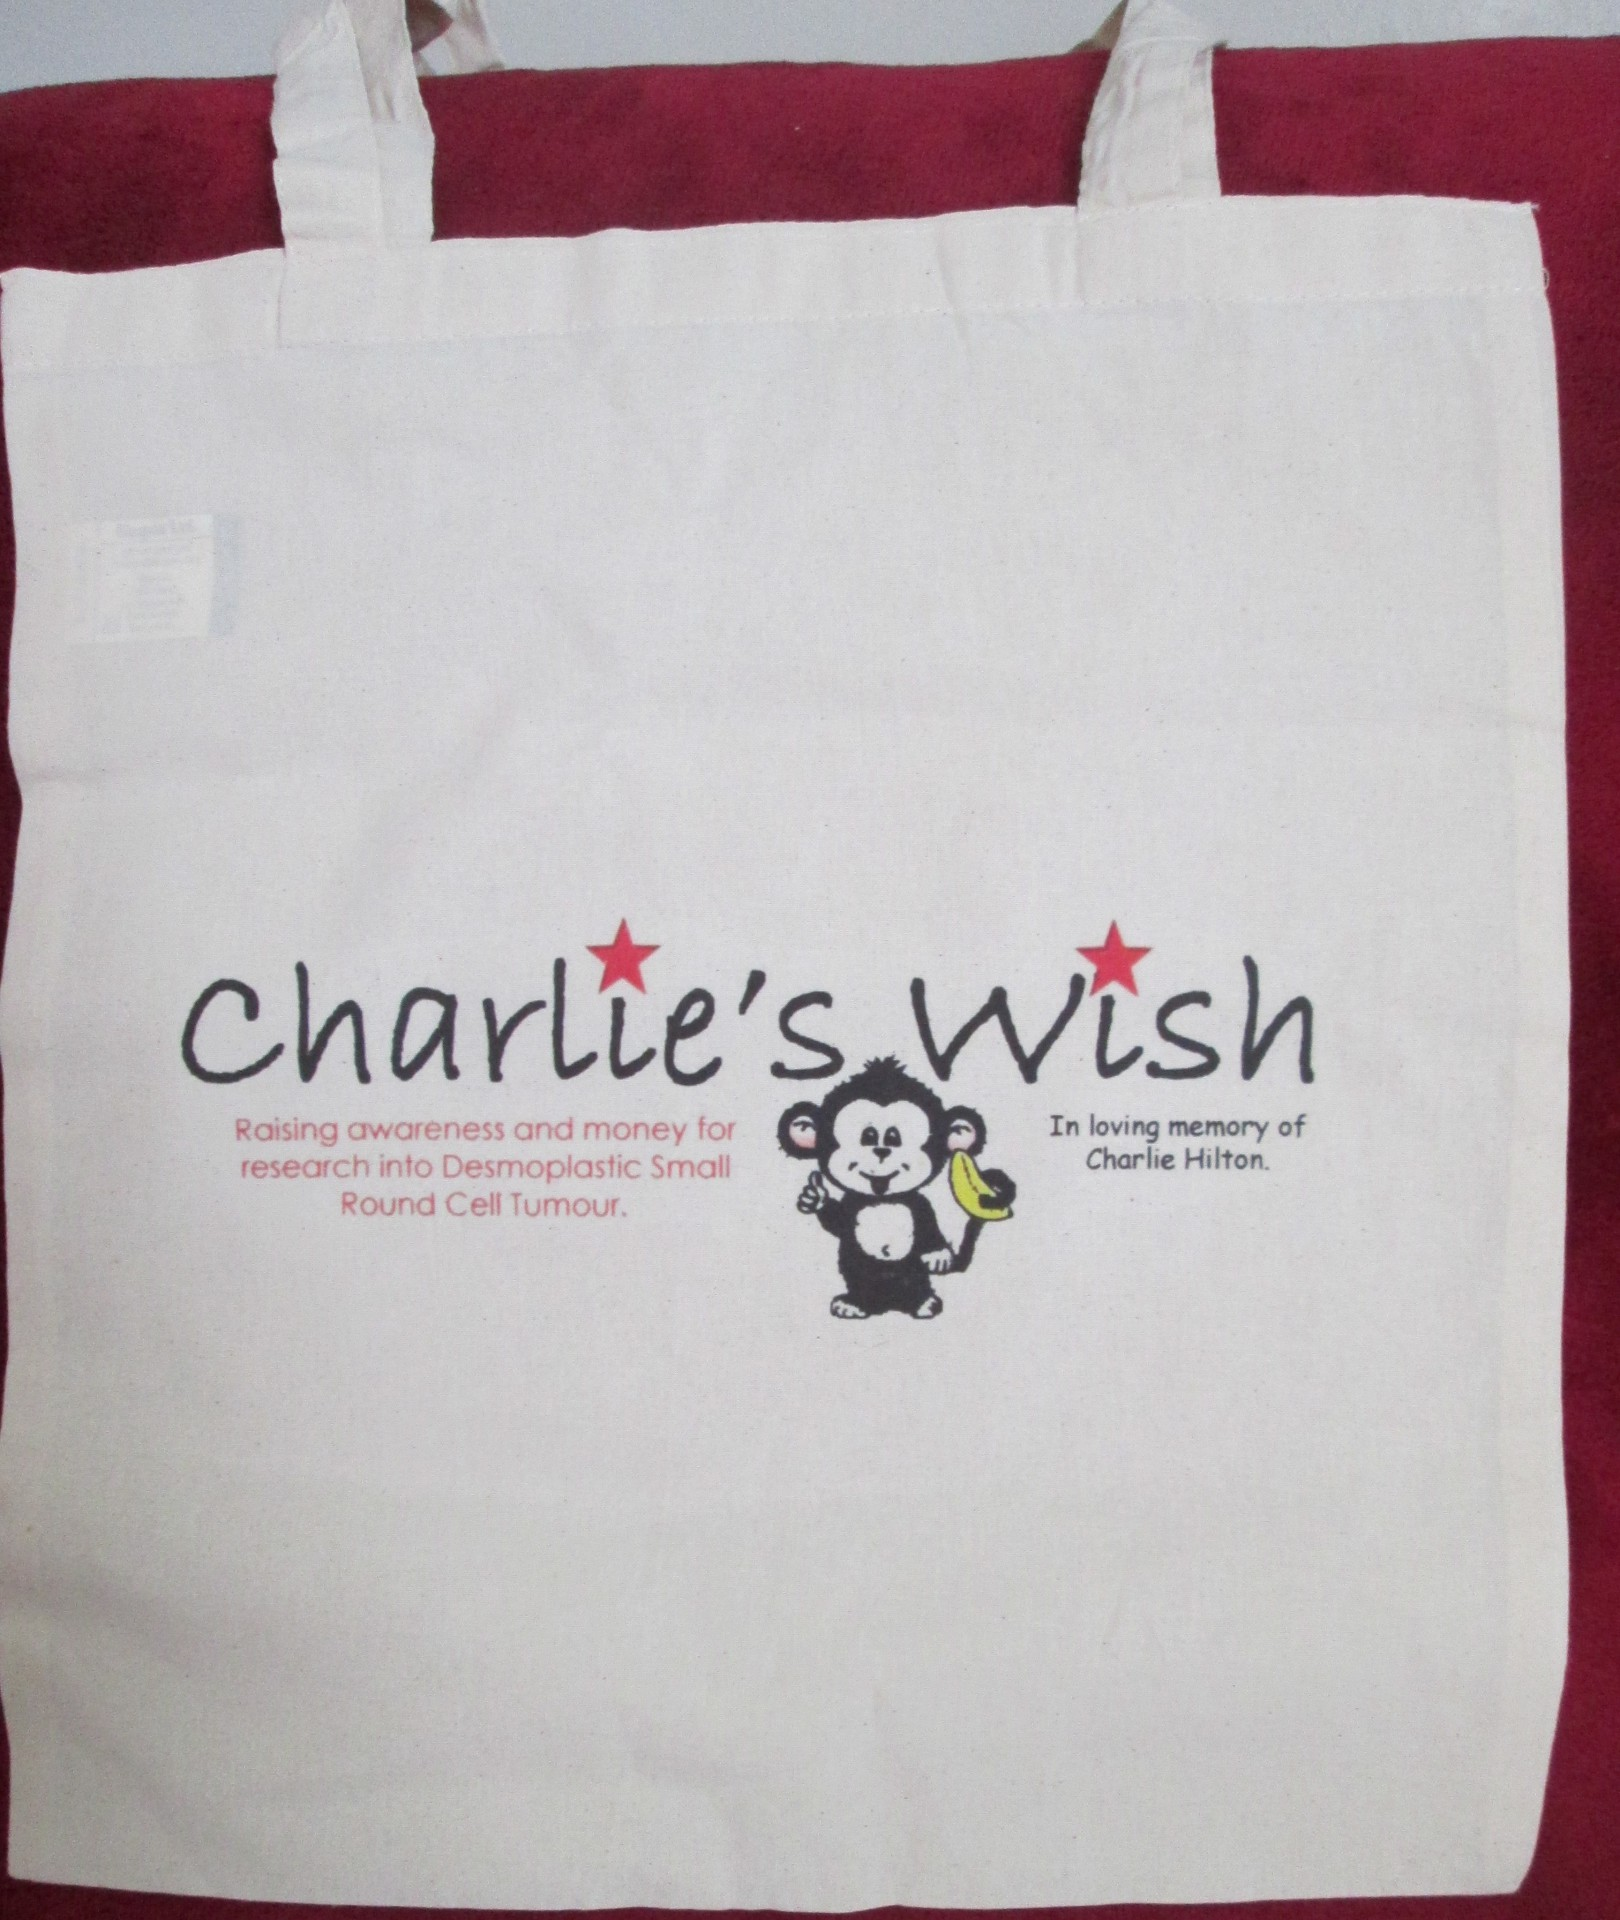 Charlie's Wish Fabric shopping bag